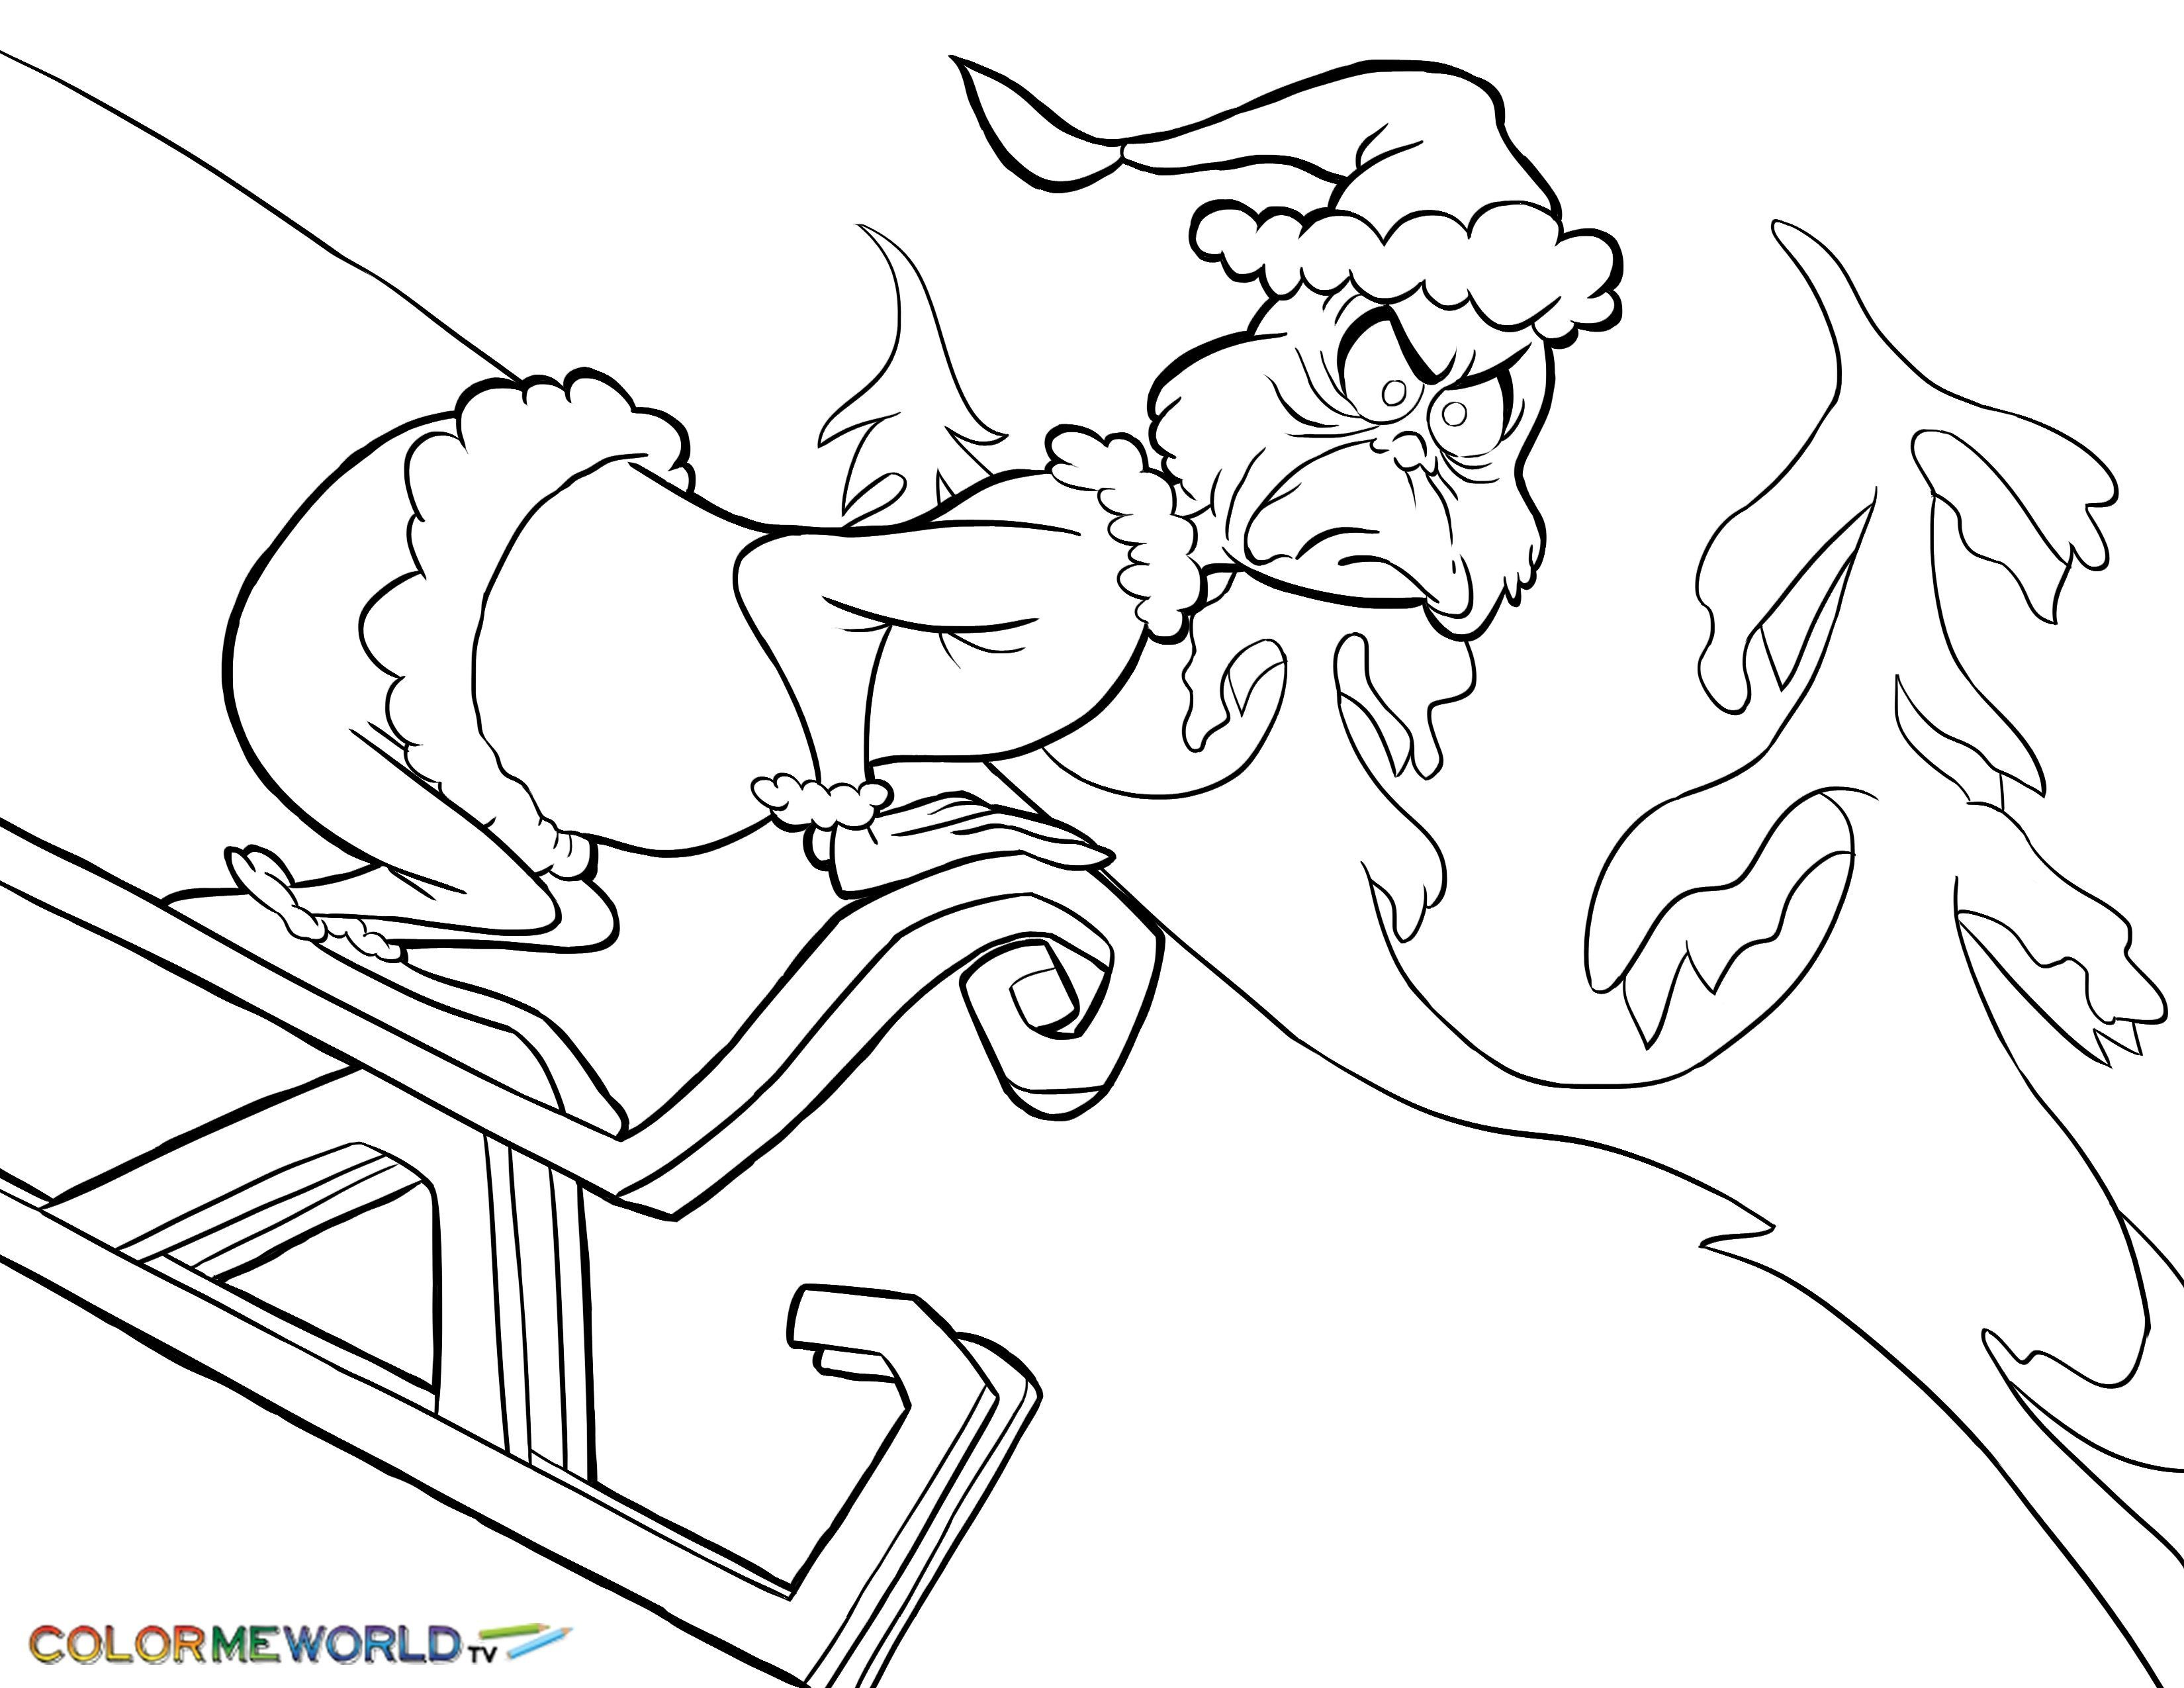 Grinch Coloring Pages The Grinch Coloring Pages Free Printable The